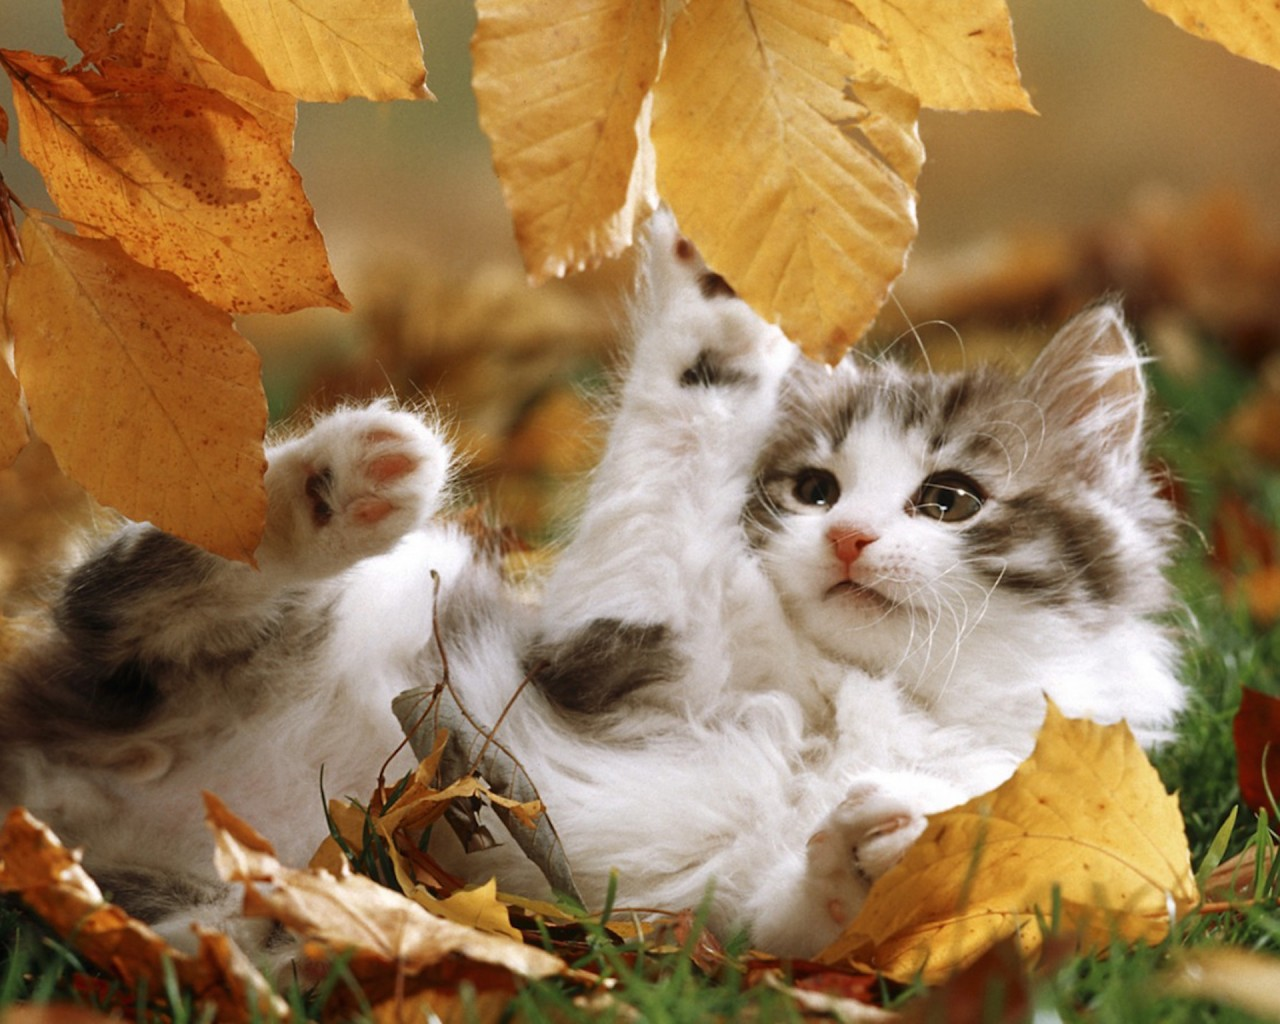 Cute Fluffy Dogs Wallpaper Autumn Kitten Playing Wallpaper Free Hd Cat Images